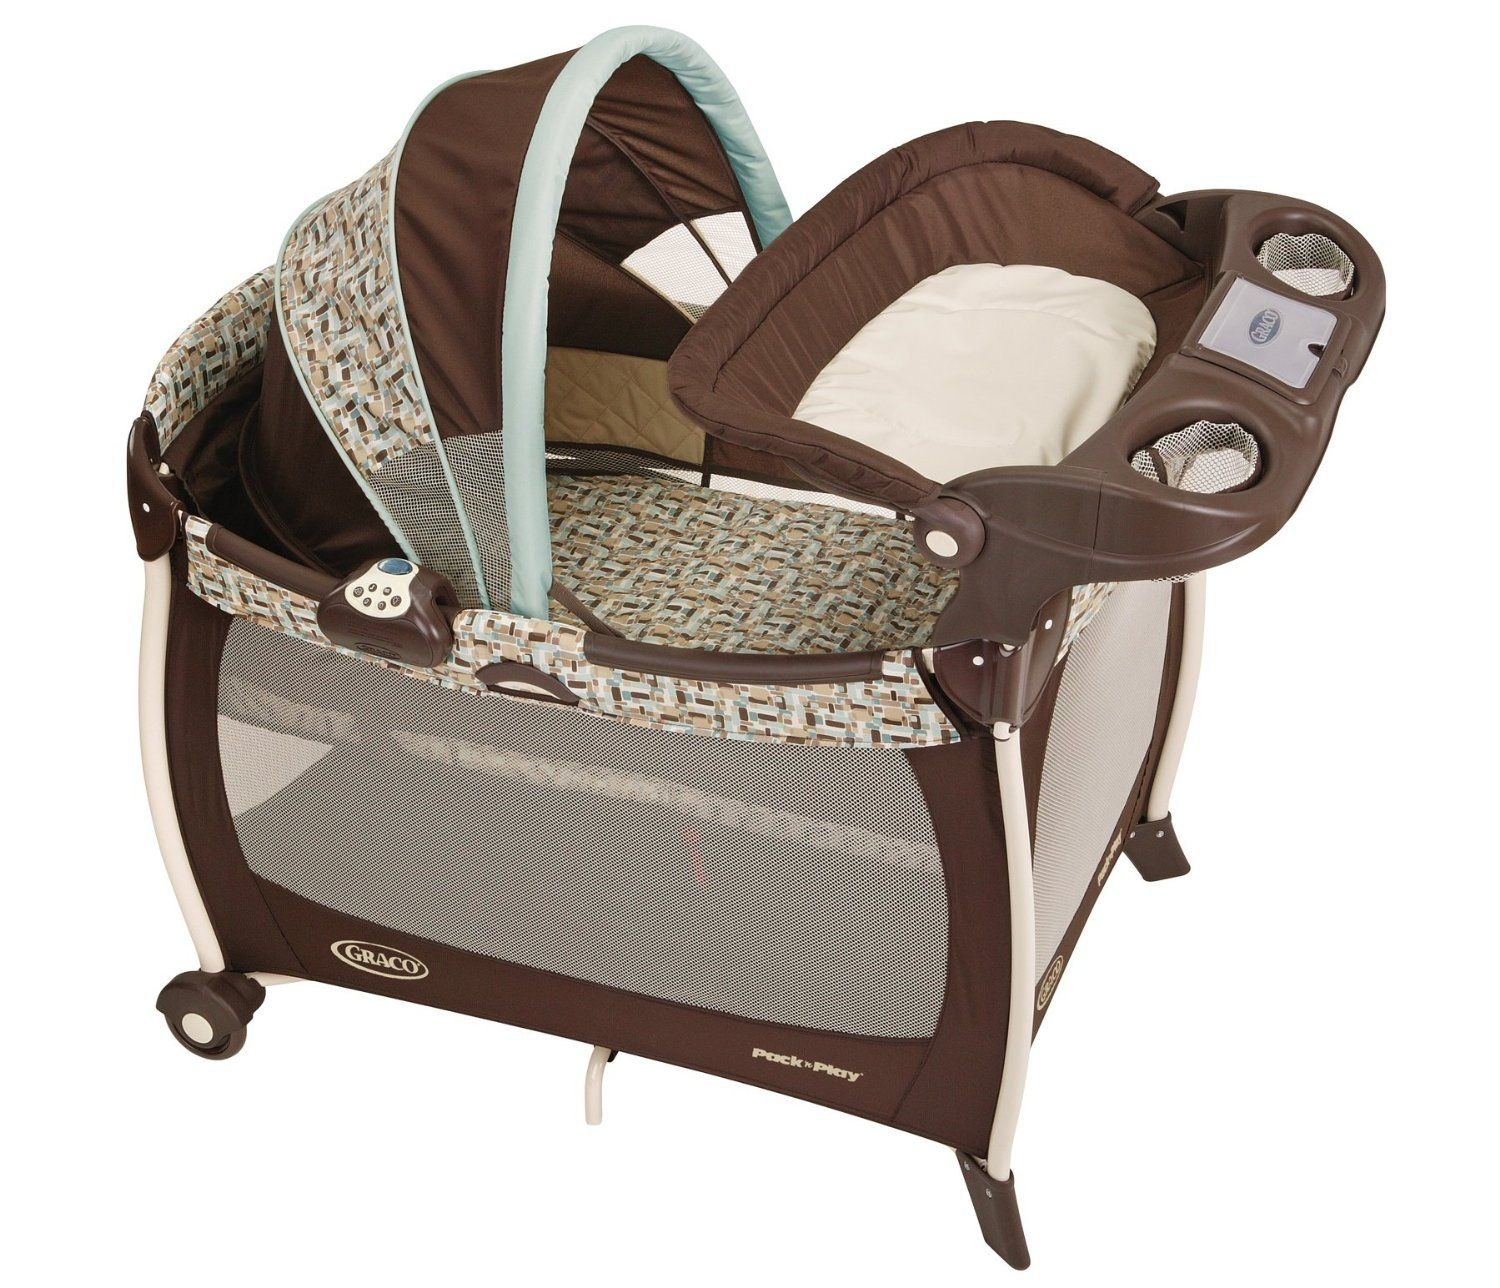 Best Bassinet For Older Babies Graco Silhouette Pack N Play With Bassinet Changer